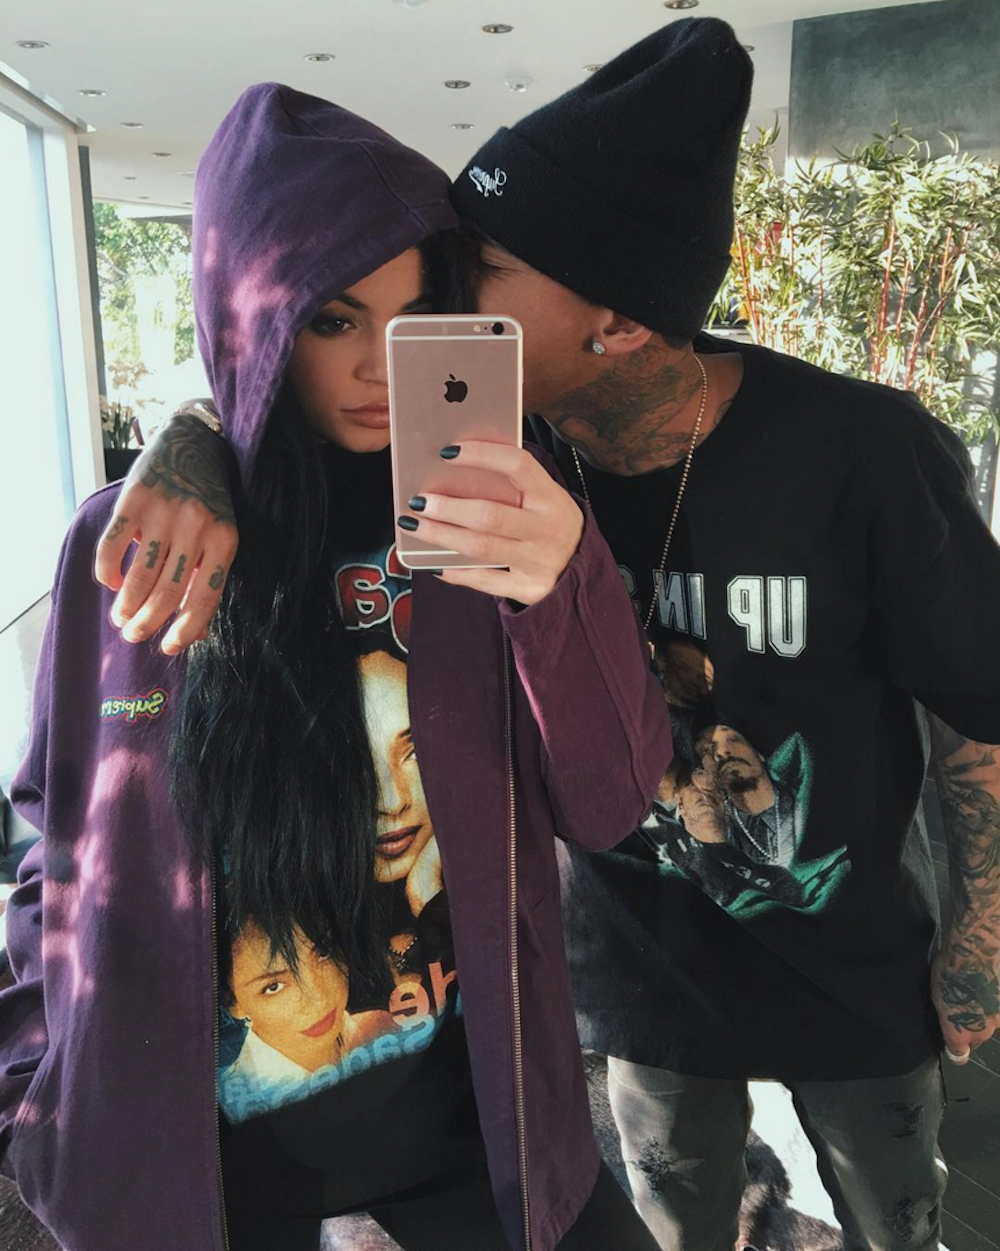 Tyga Posts Picture of Kylie Jenner on Instagram - Tyga ...